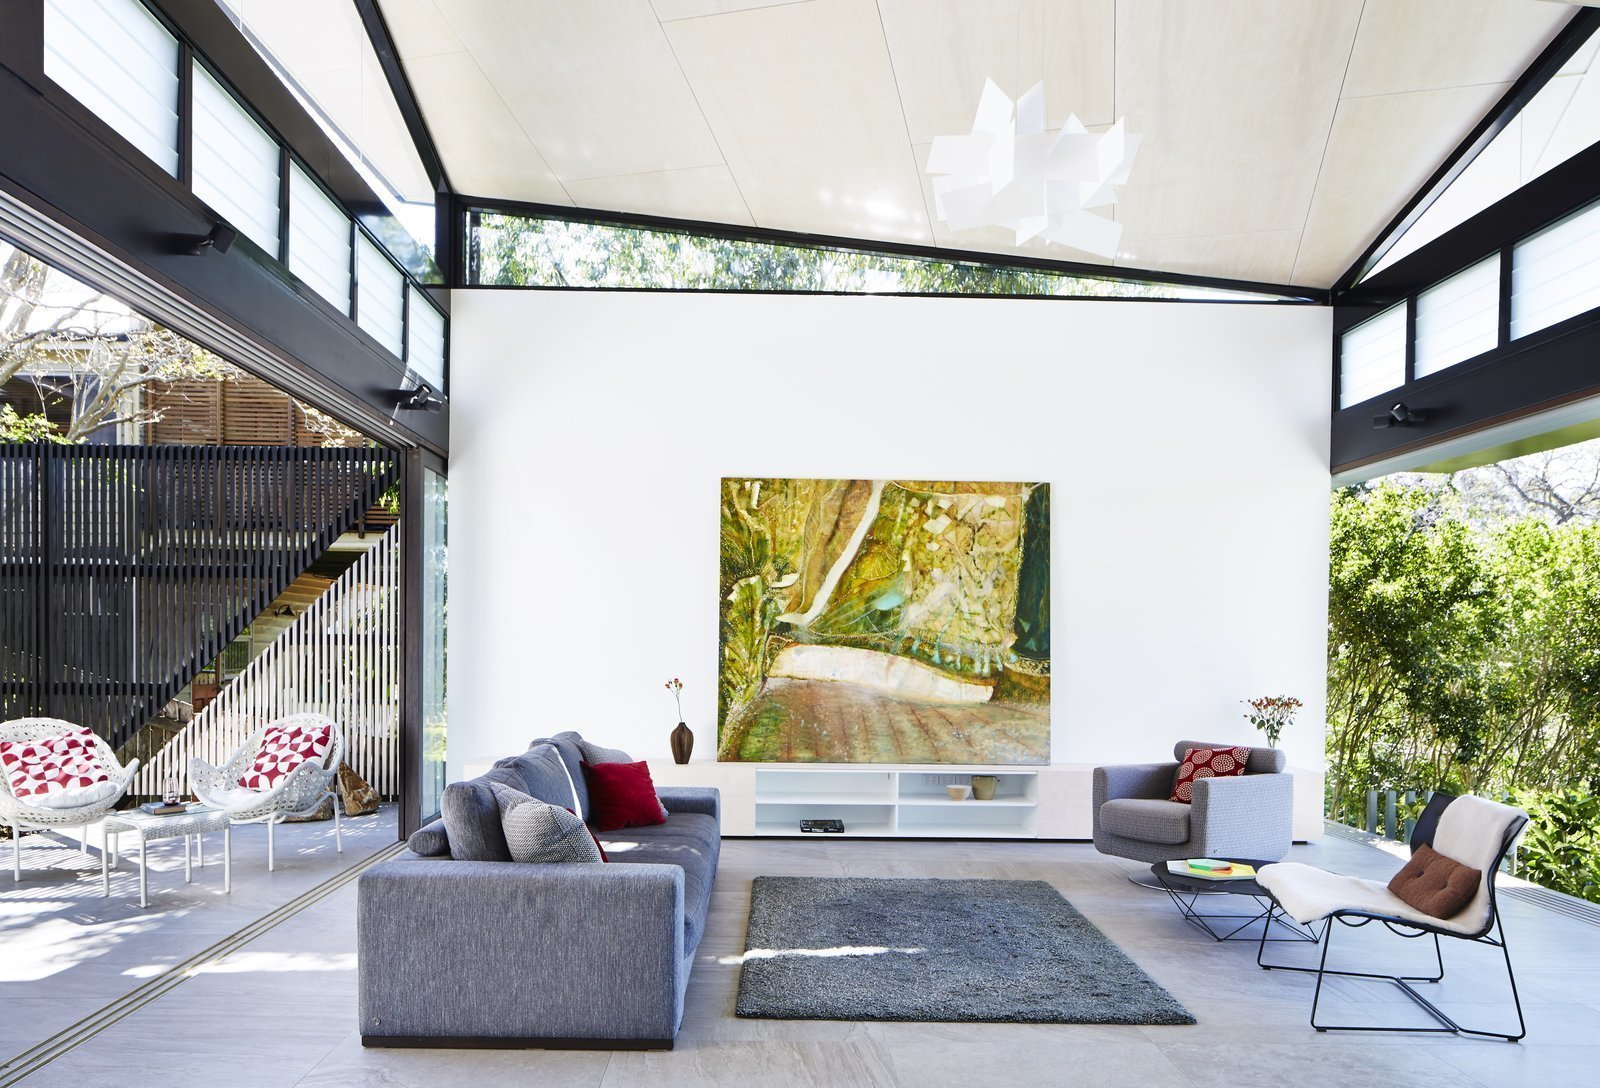 Living Room, Sofa, Chair, Rug Floor, Console Tables, Coffee Tables, End Tables, and Pendant Lighting  Best Photos from 9 Best Homes With Interesting Screened Facades